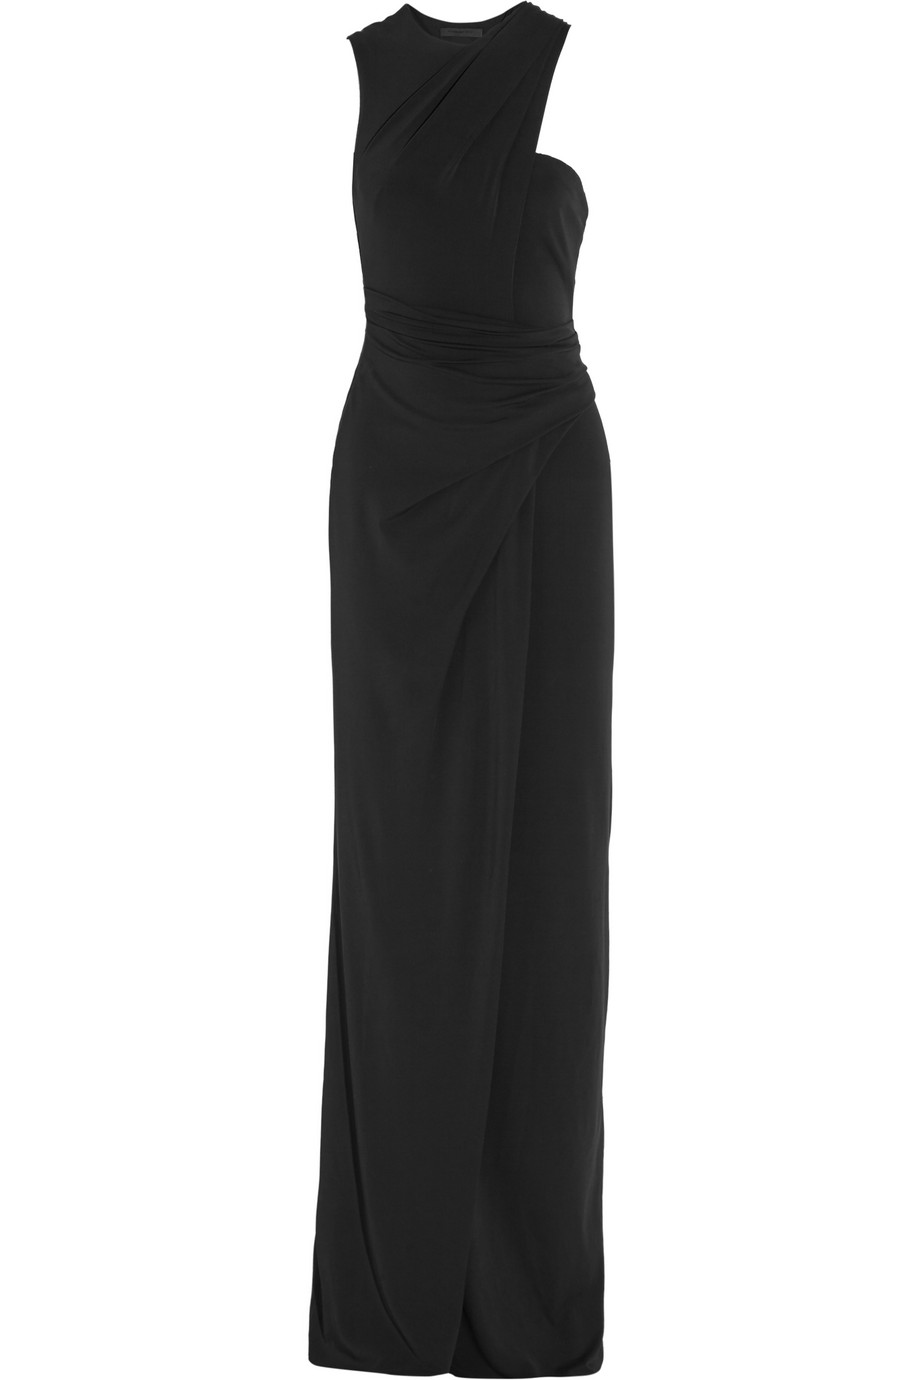 Alexander Wang One-Shoulder Draped Stretch-Crepe Gown, Black, Women's, Size: 2